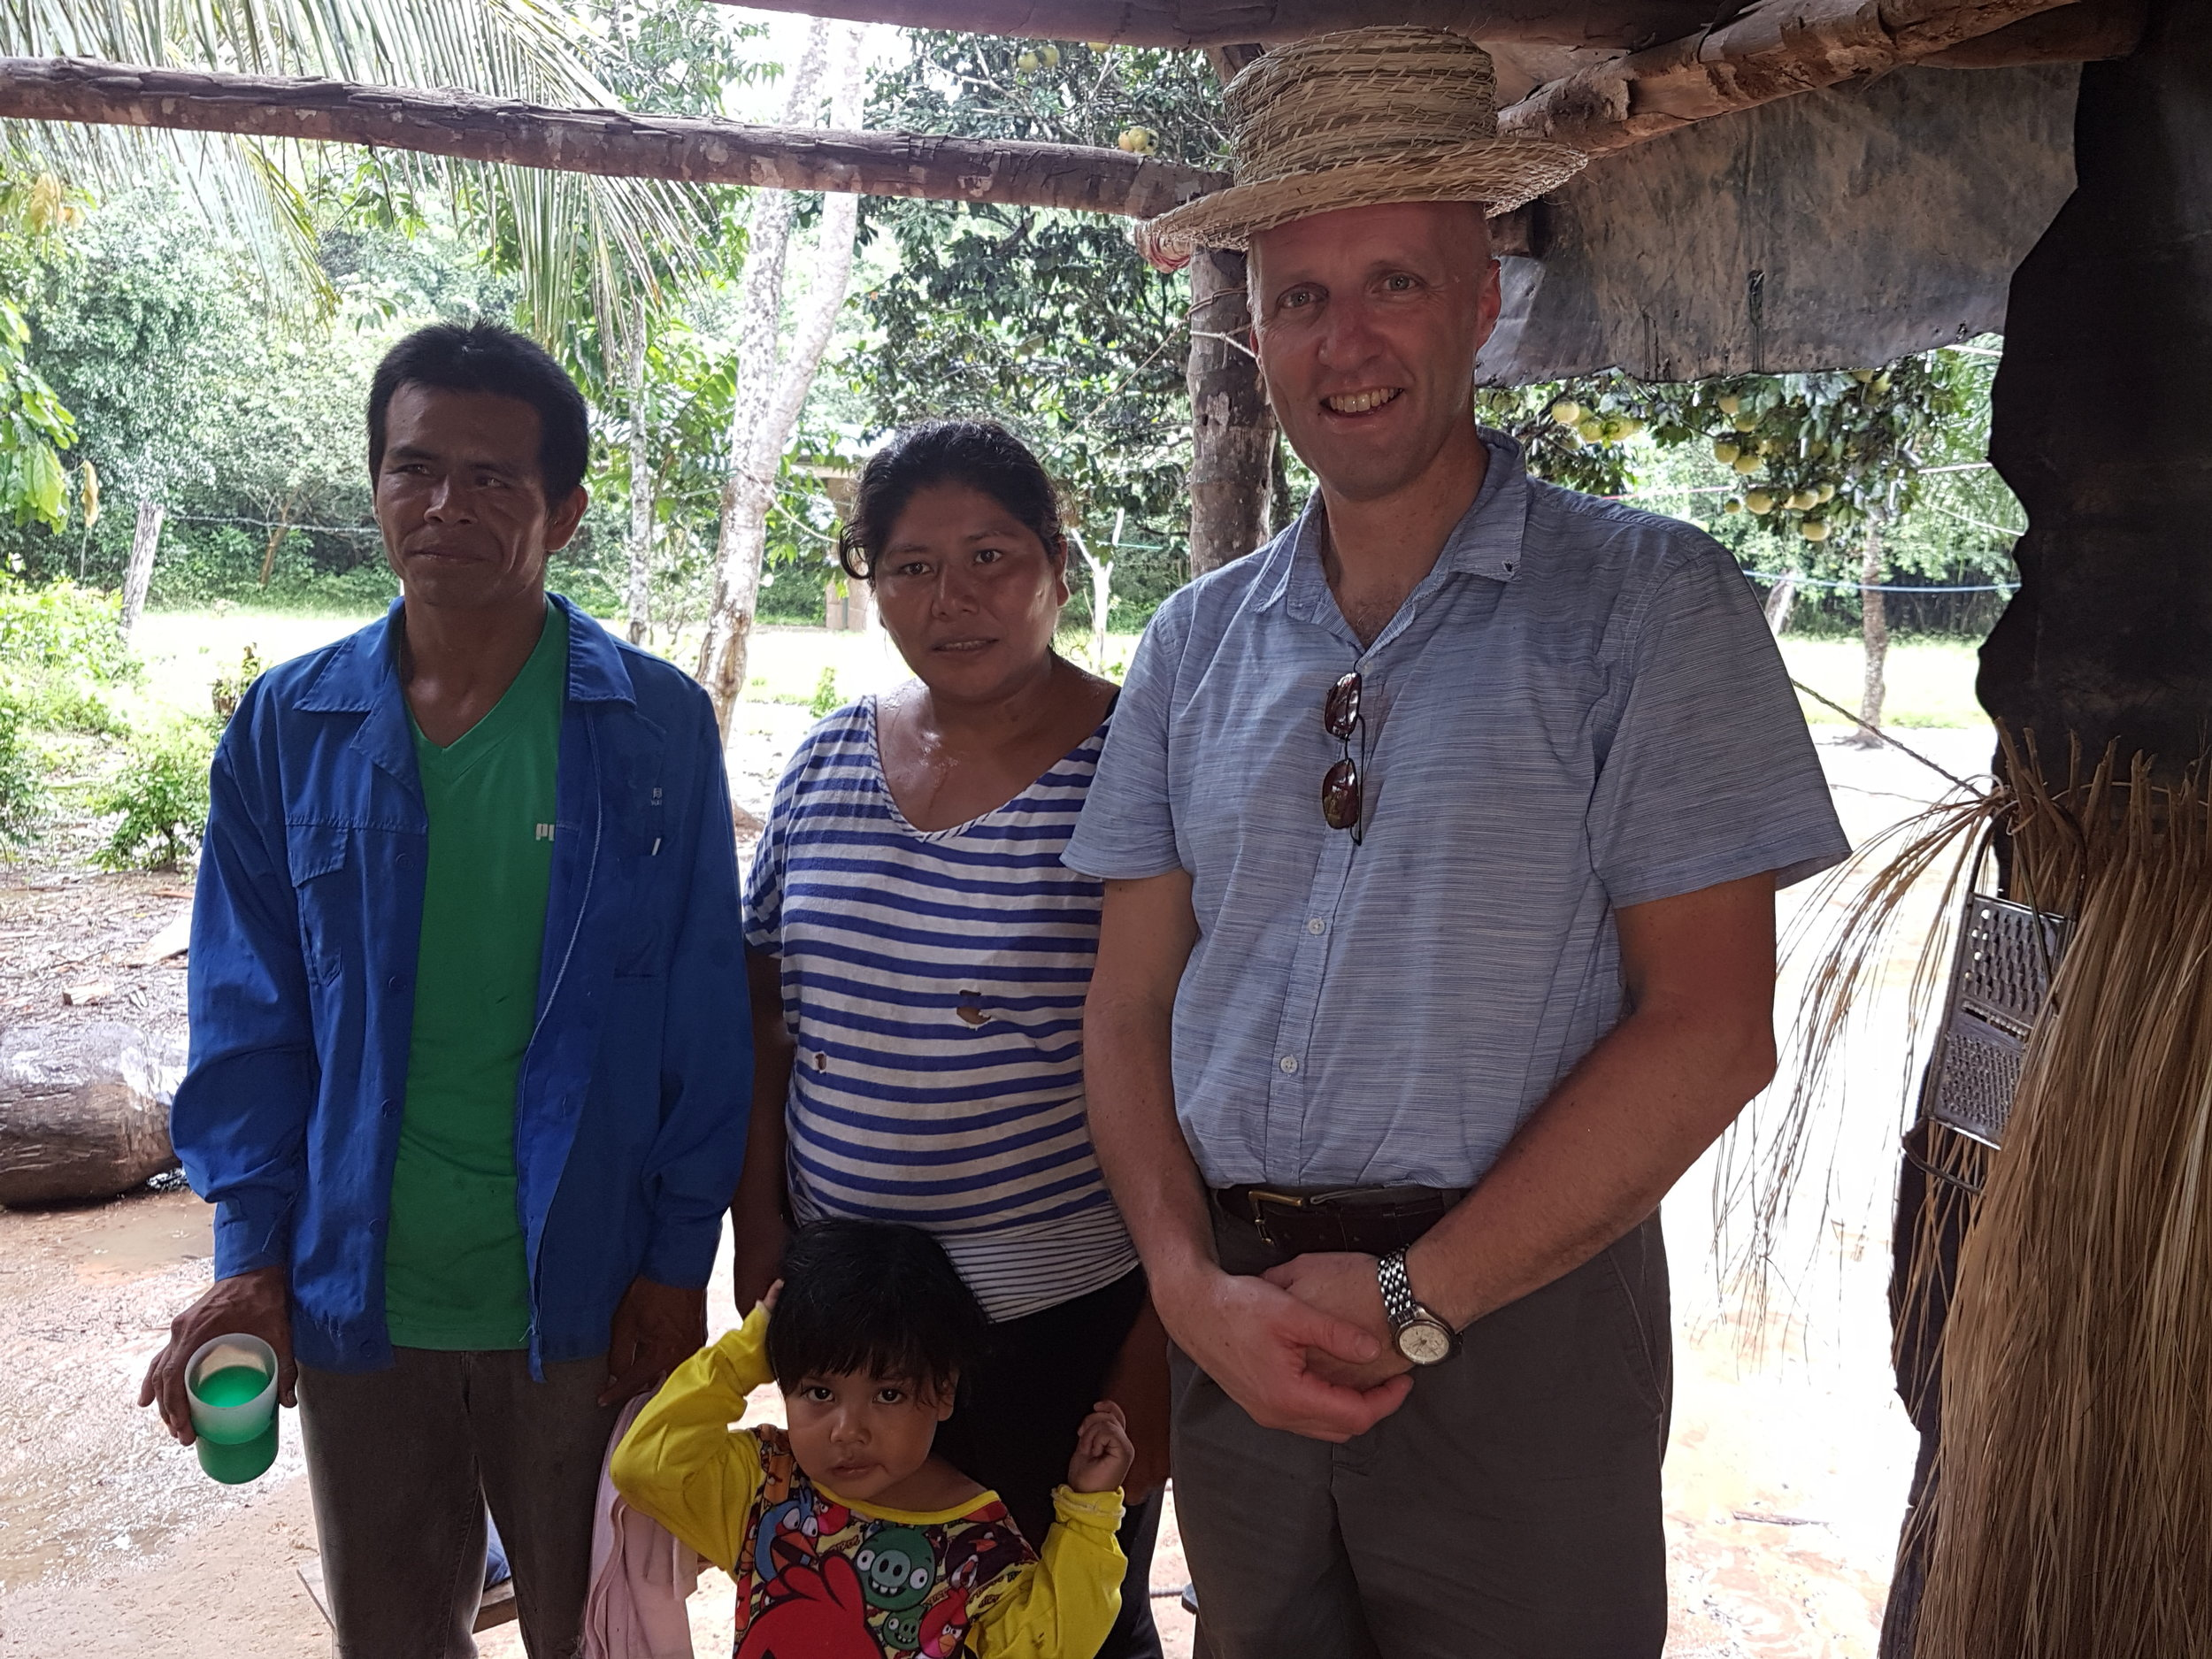 Laurence pictured with Mariella and her family, wearing the hat she made for him.